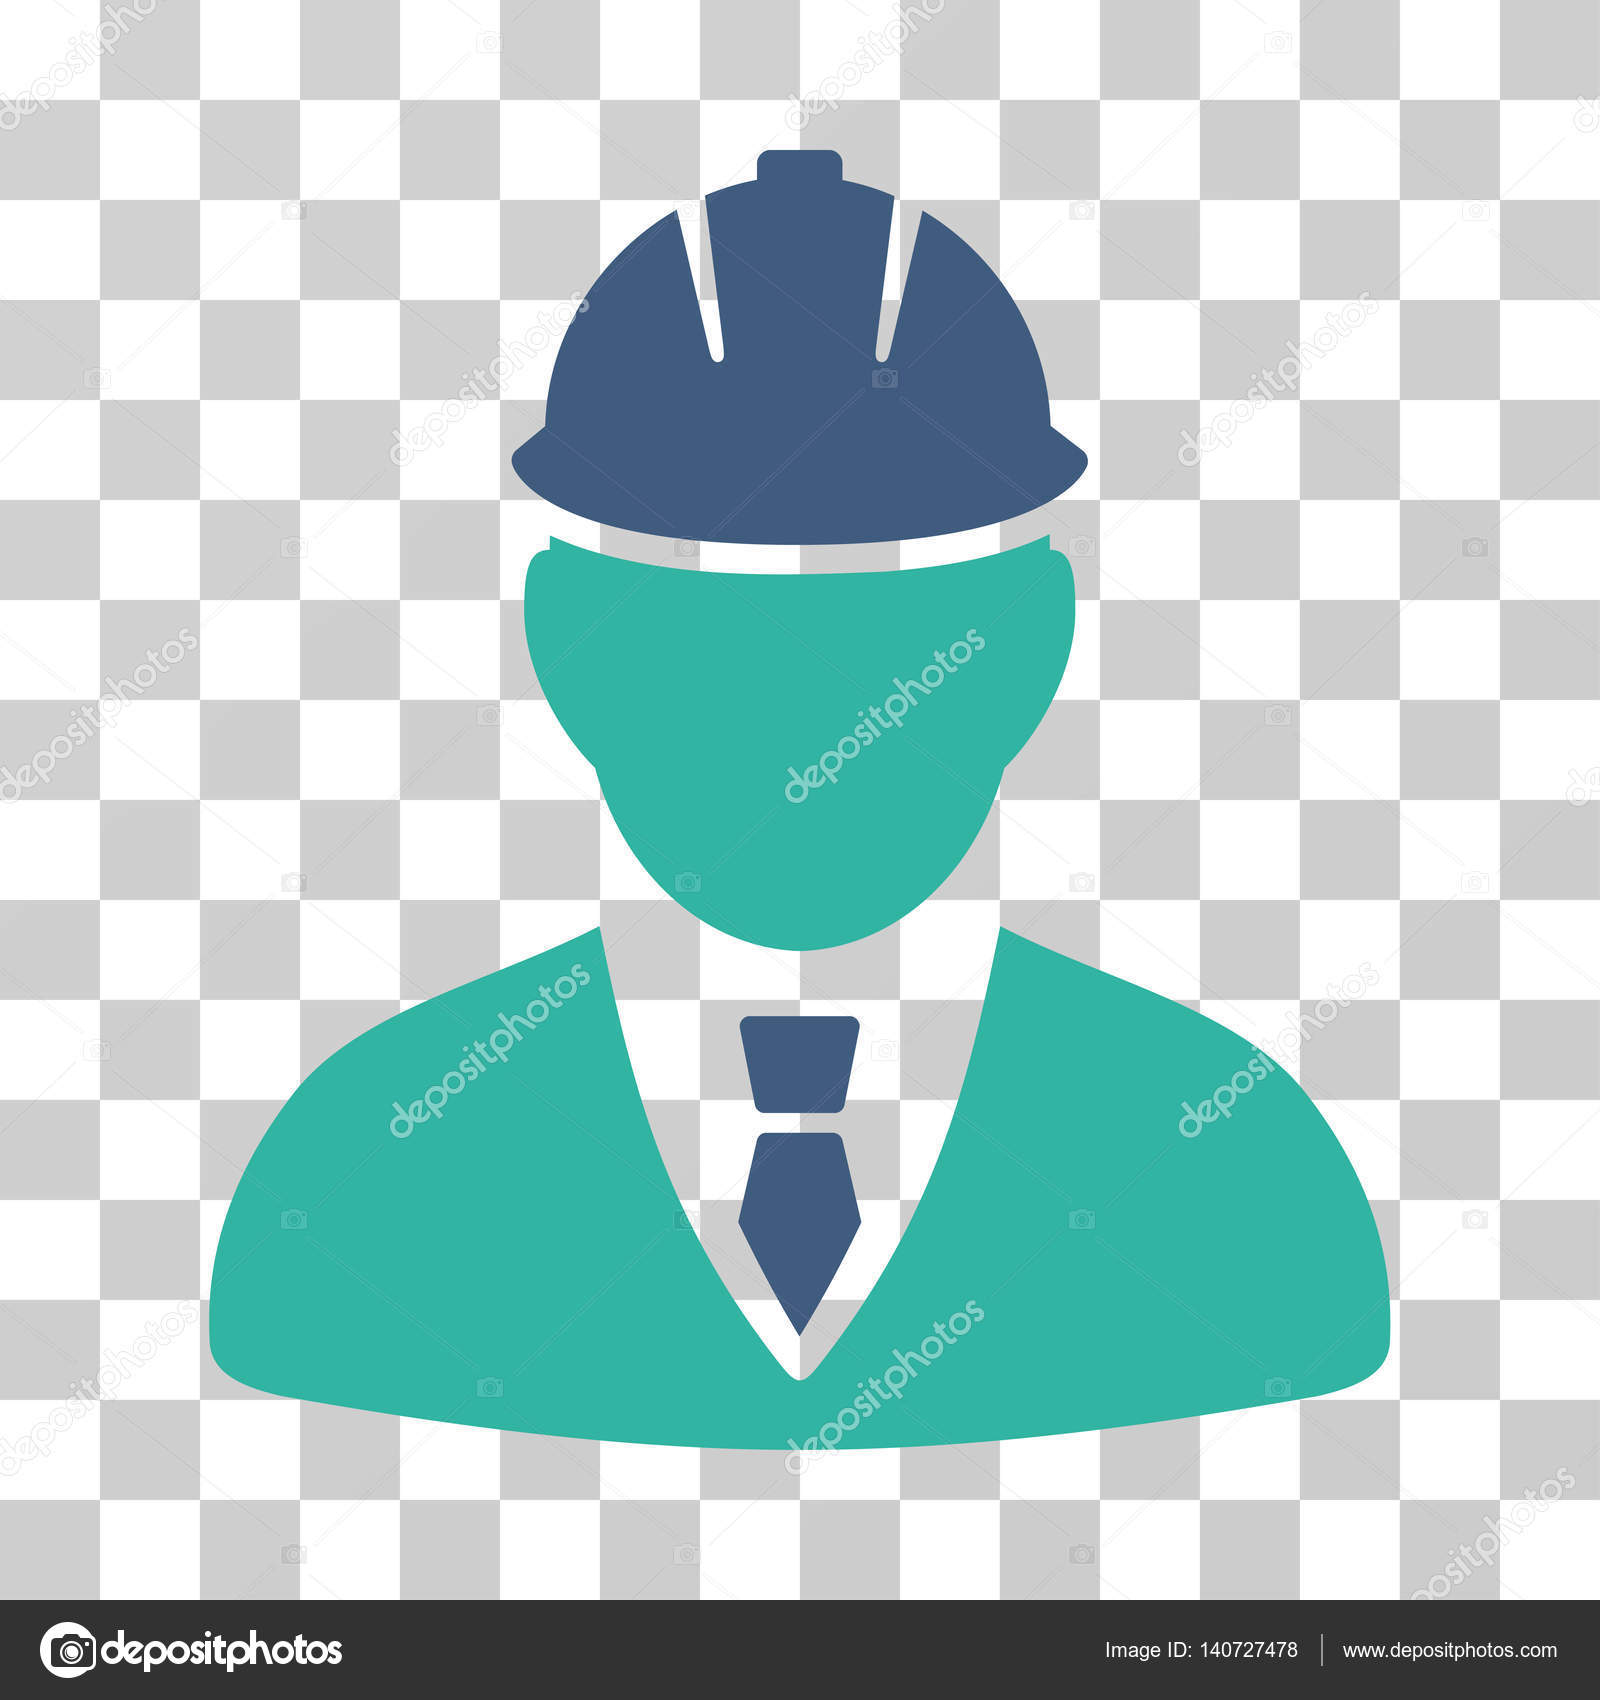 Engineer vector icon stock vector ahasoft 140727478 engineer icon vector illustration style is flat iconic bicolor symbol cobalt and cyan colors transparent background designed for web and software biocorpaavc